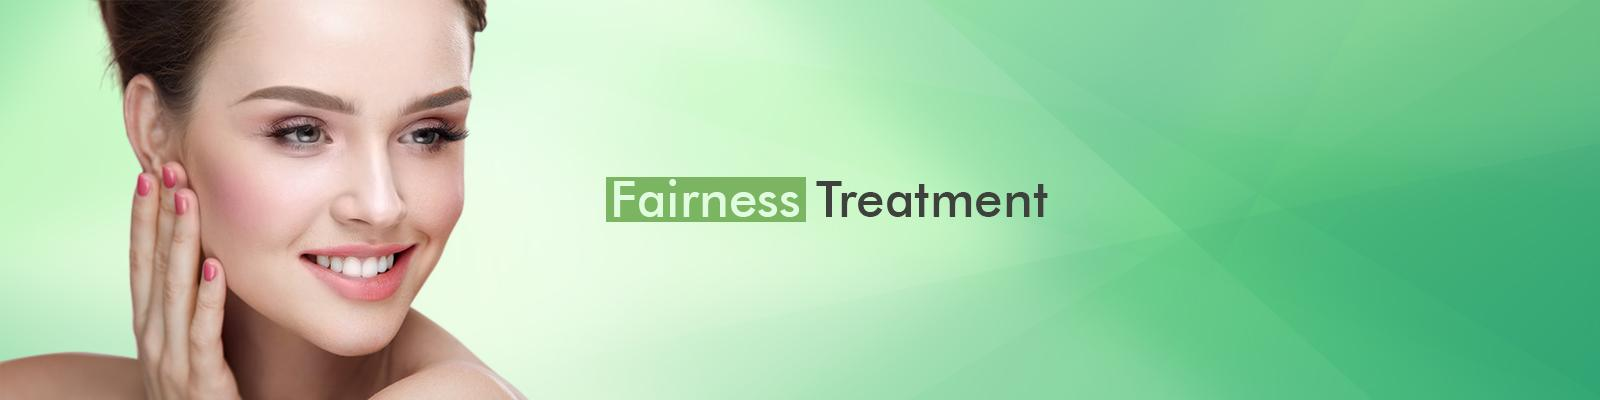 Skin Whitening Fairness Treatment